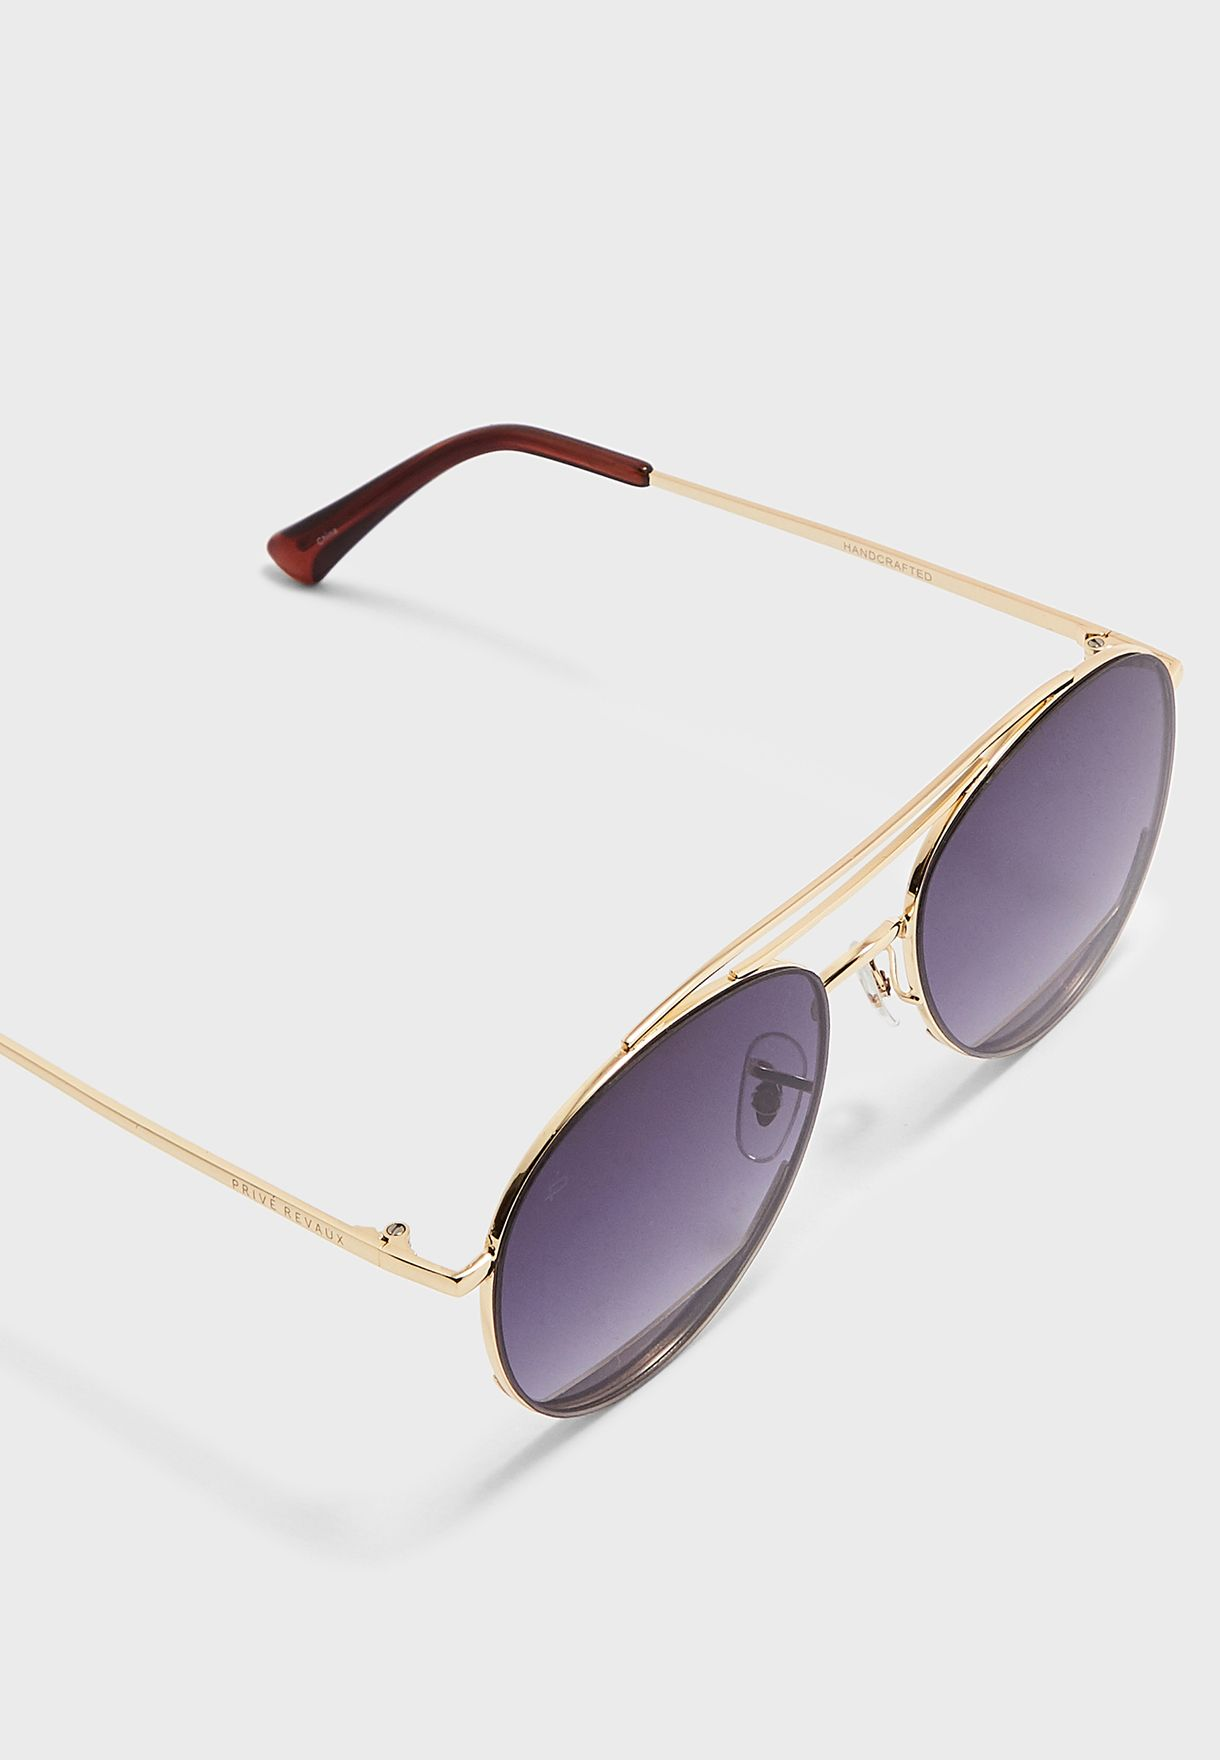 53a2b7dfa3e5b Shop Prive Revaux gold The Daveo Aviator KD2180-C35-637-GLD for ...